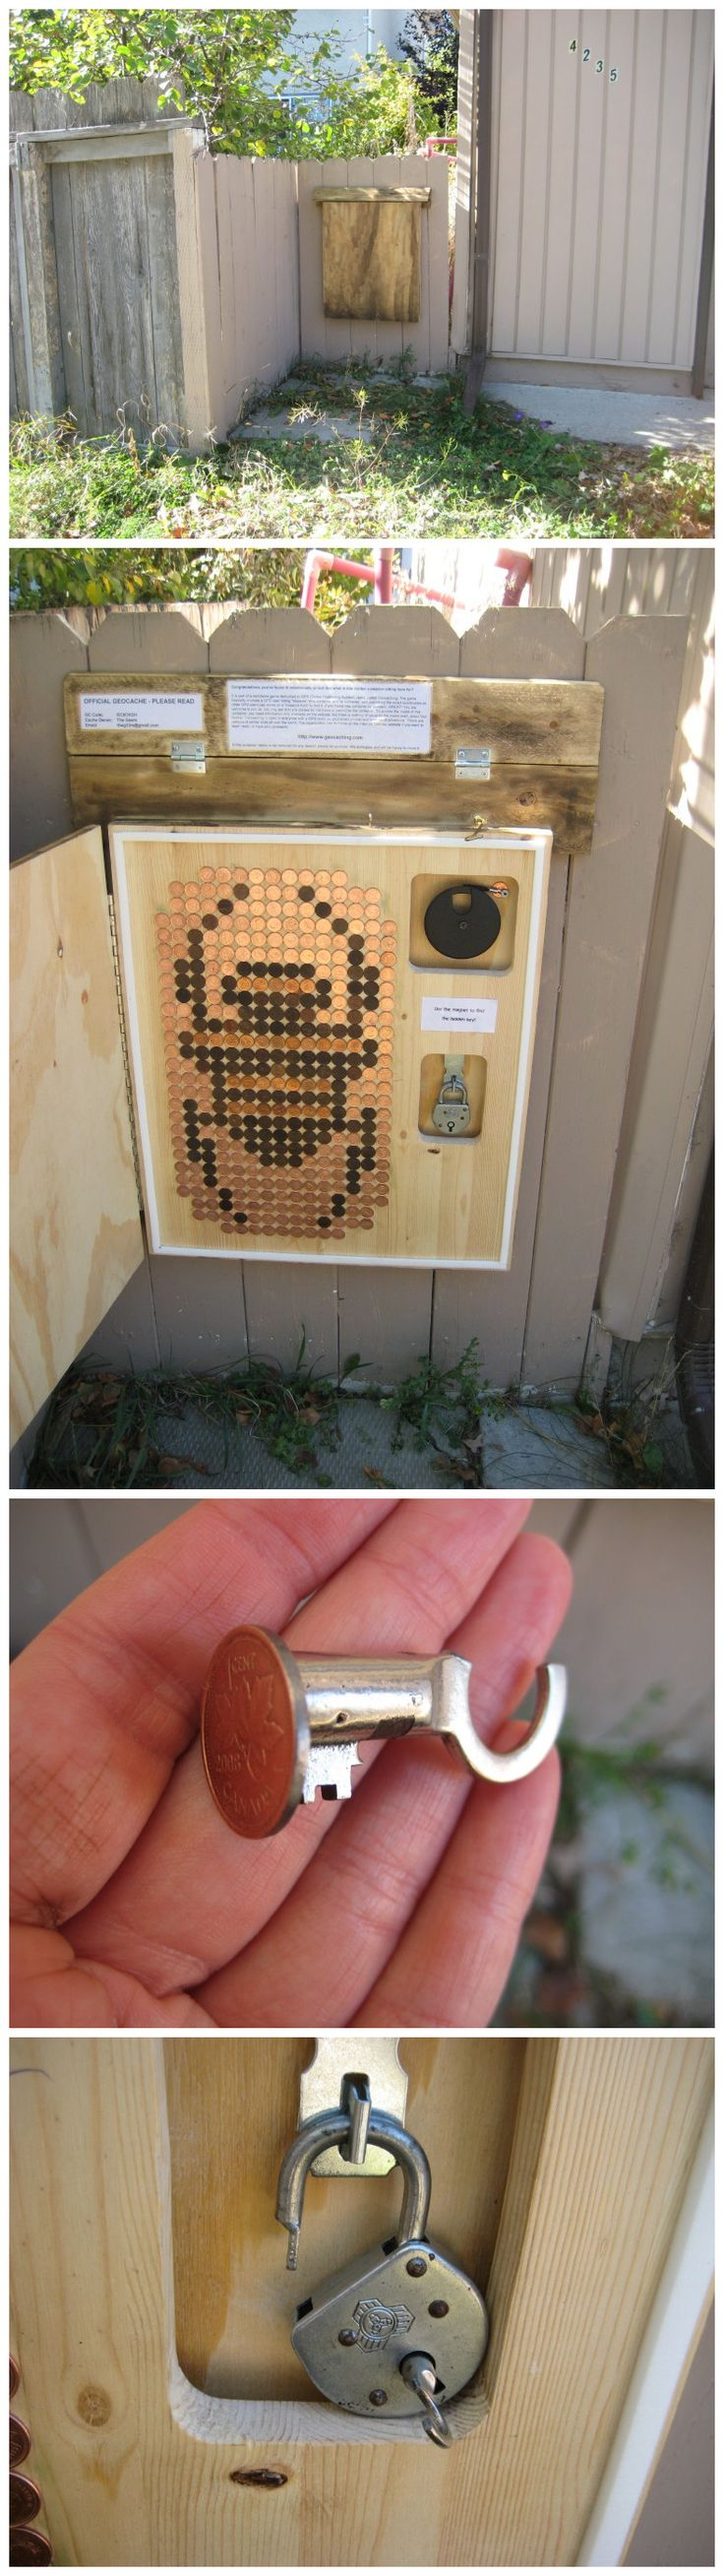 Create a geocache with spare change. – Deja Vu? (GC5F41G) – Geocache of the Week